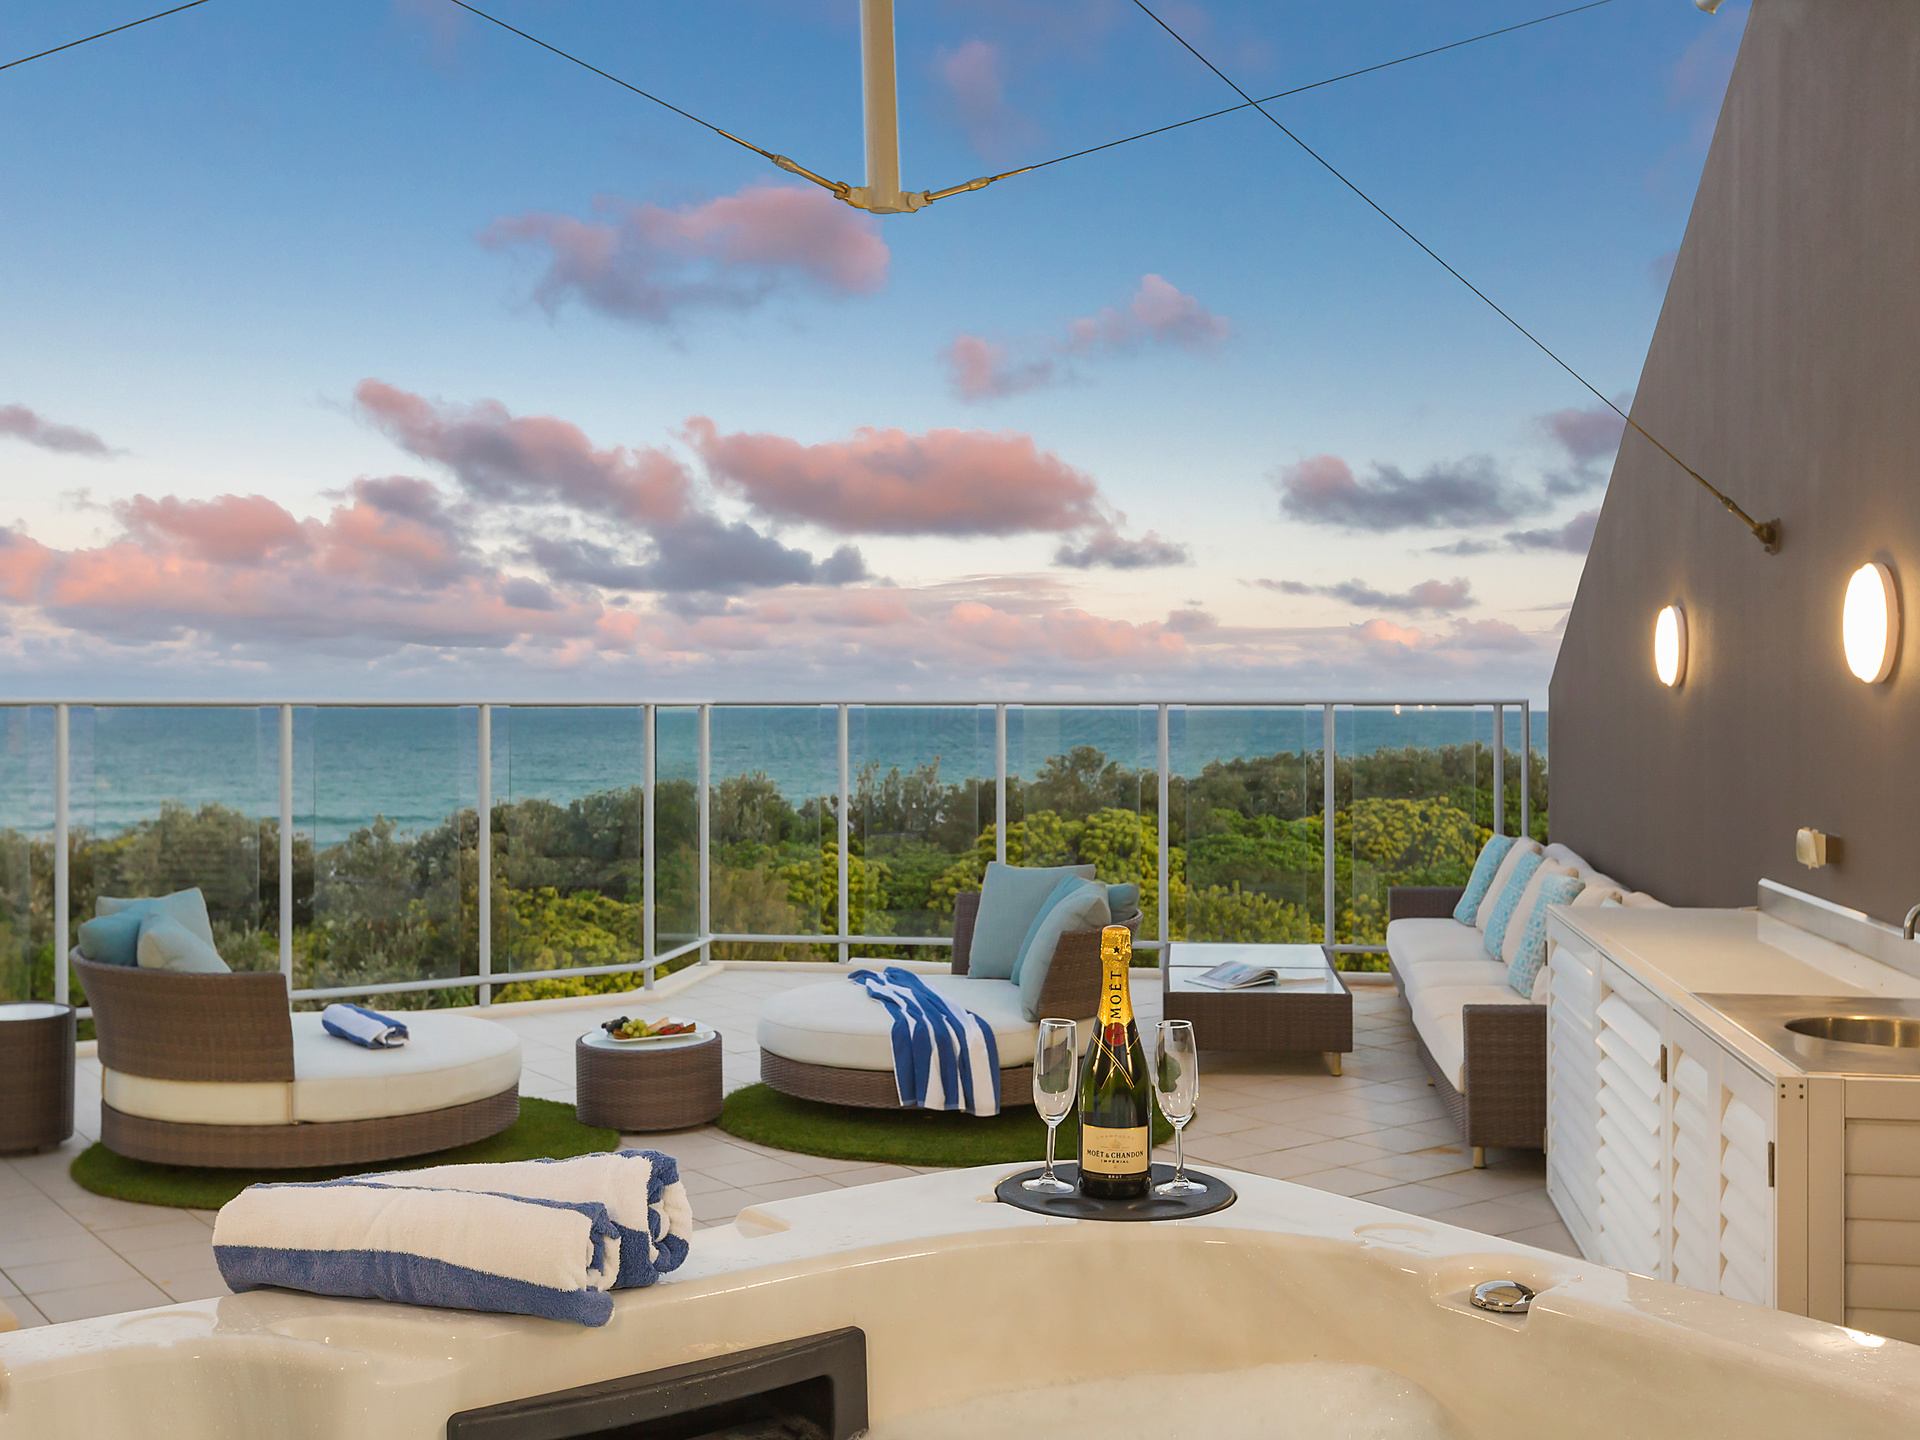 PENTHOUSE ROOF TOP JACUZZI